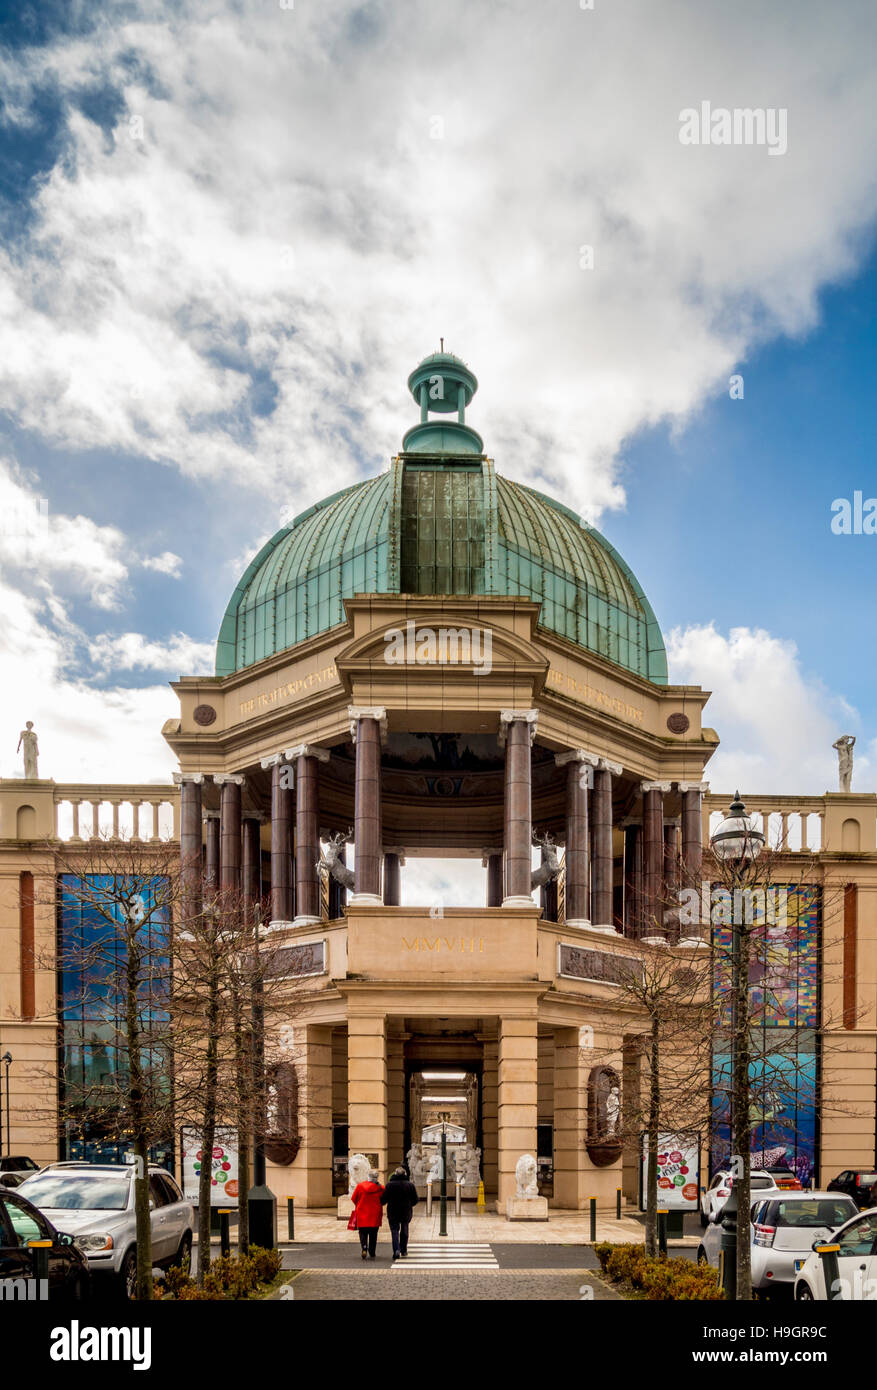 The Trafford Centre dome and entrance, Manchester. - Stock Image